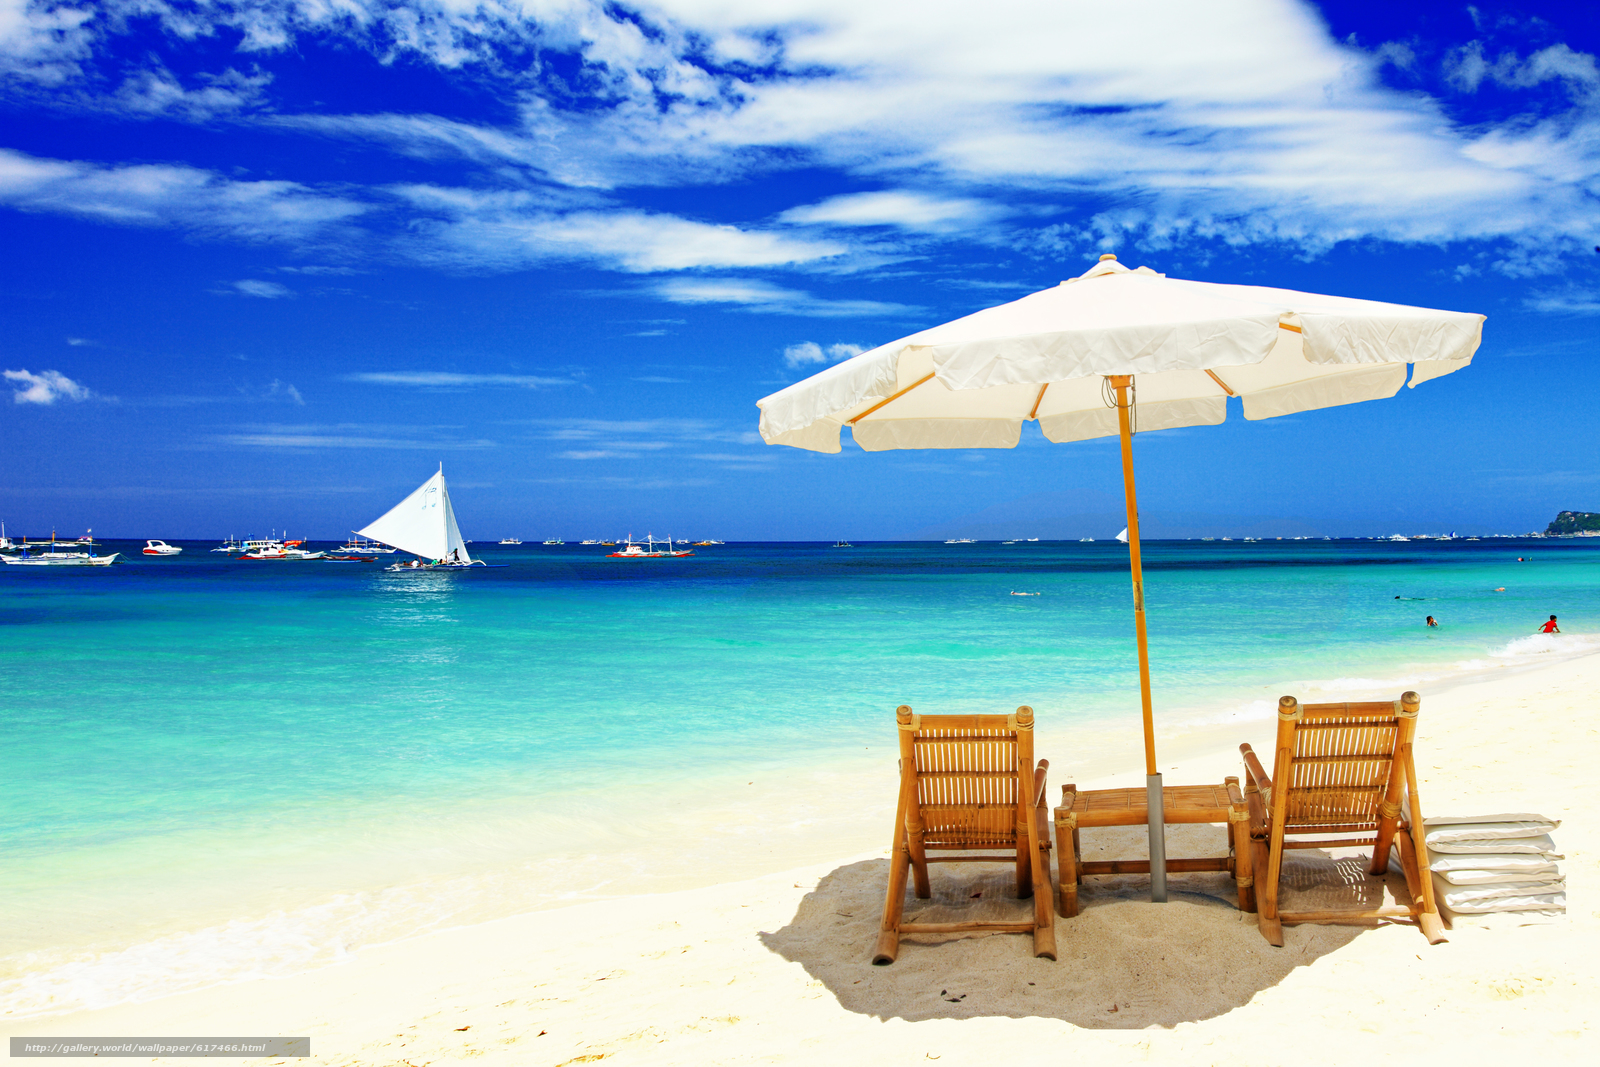 Download Wallpaper Chairs Beach Umbrella Boats Free Desktop In The Resolution 5616x3744 Picture No617466